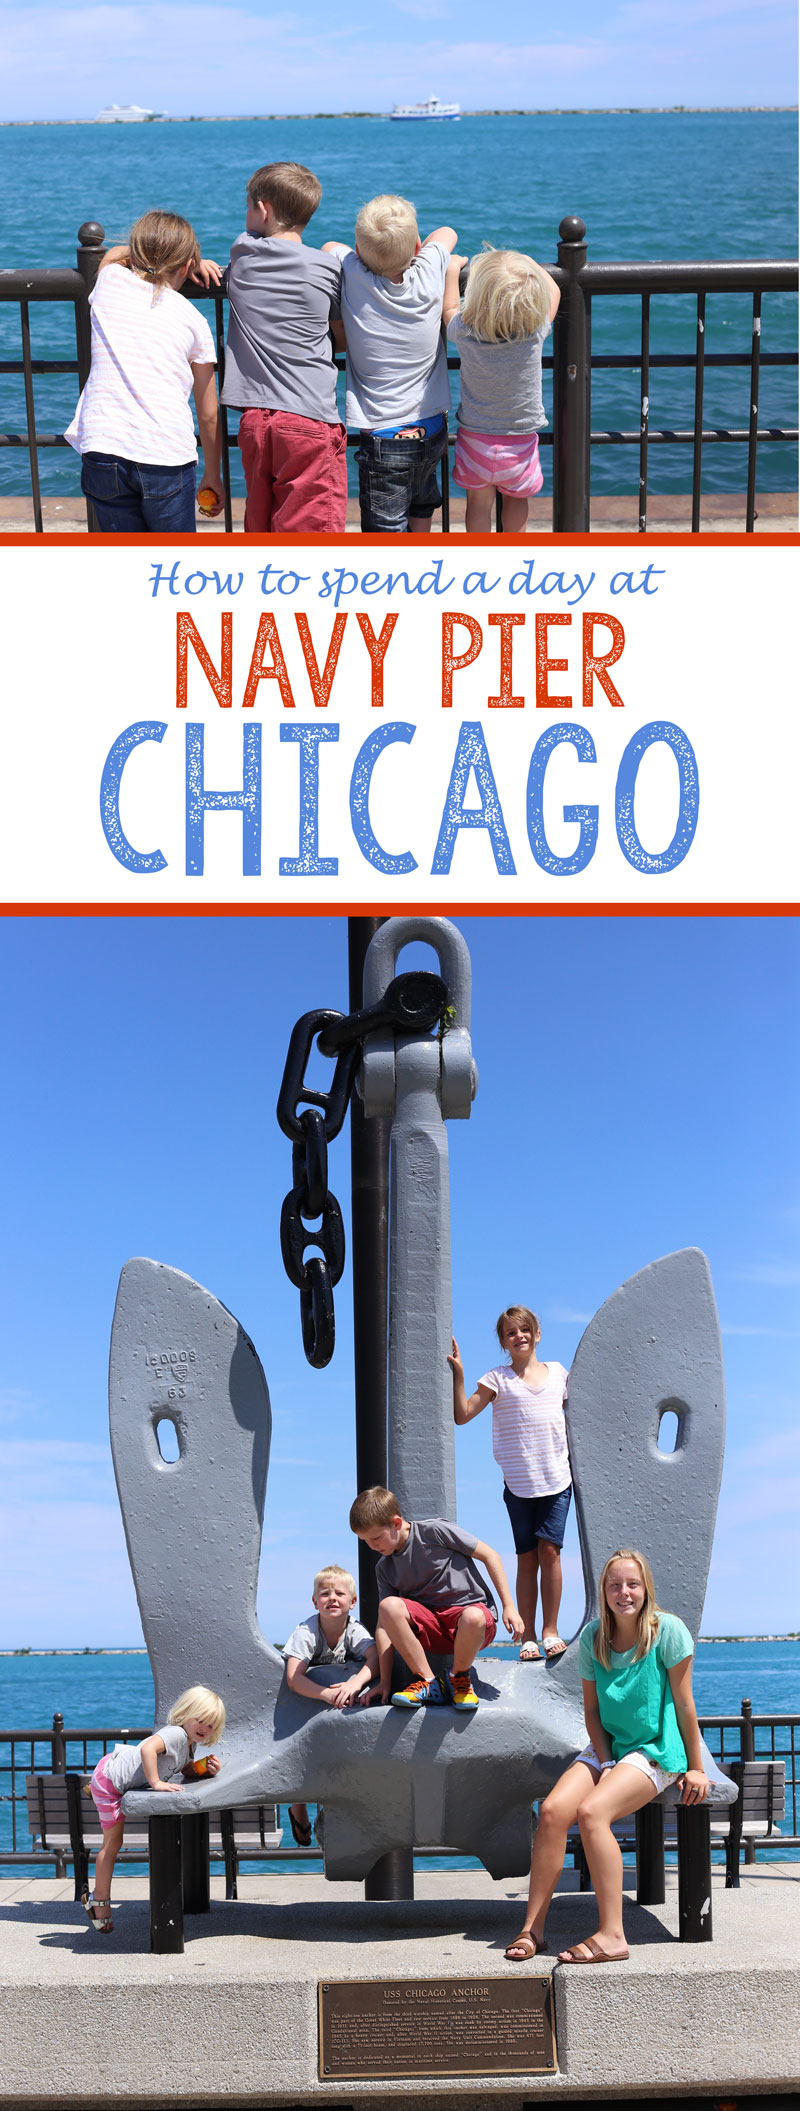 A day at Navy Pier Chicago